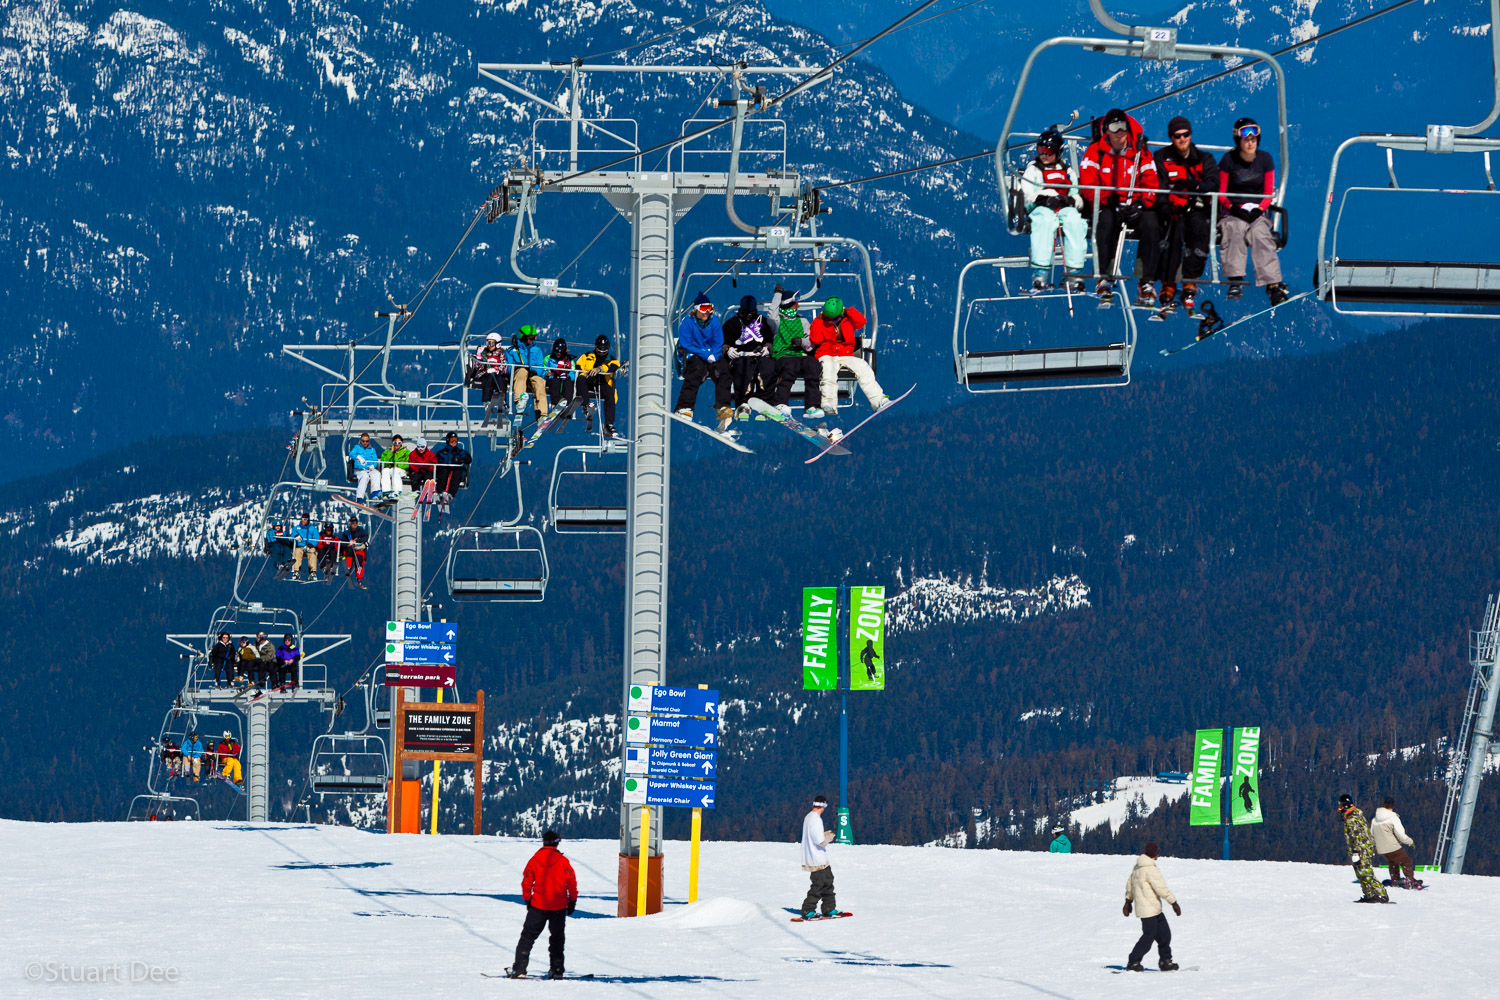 Whistler Blackcomb Ski Resort, Whistler, BC, Canada. Whistler Blackcomb is the largest ski resort in North America, and is consistently ranked as the top ski resort in the world.